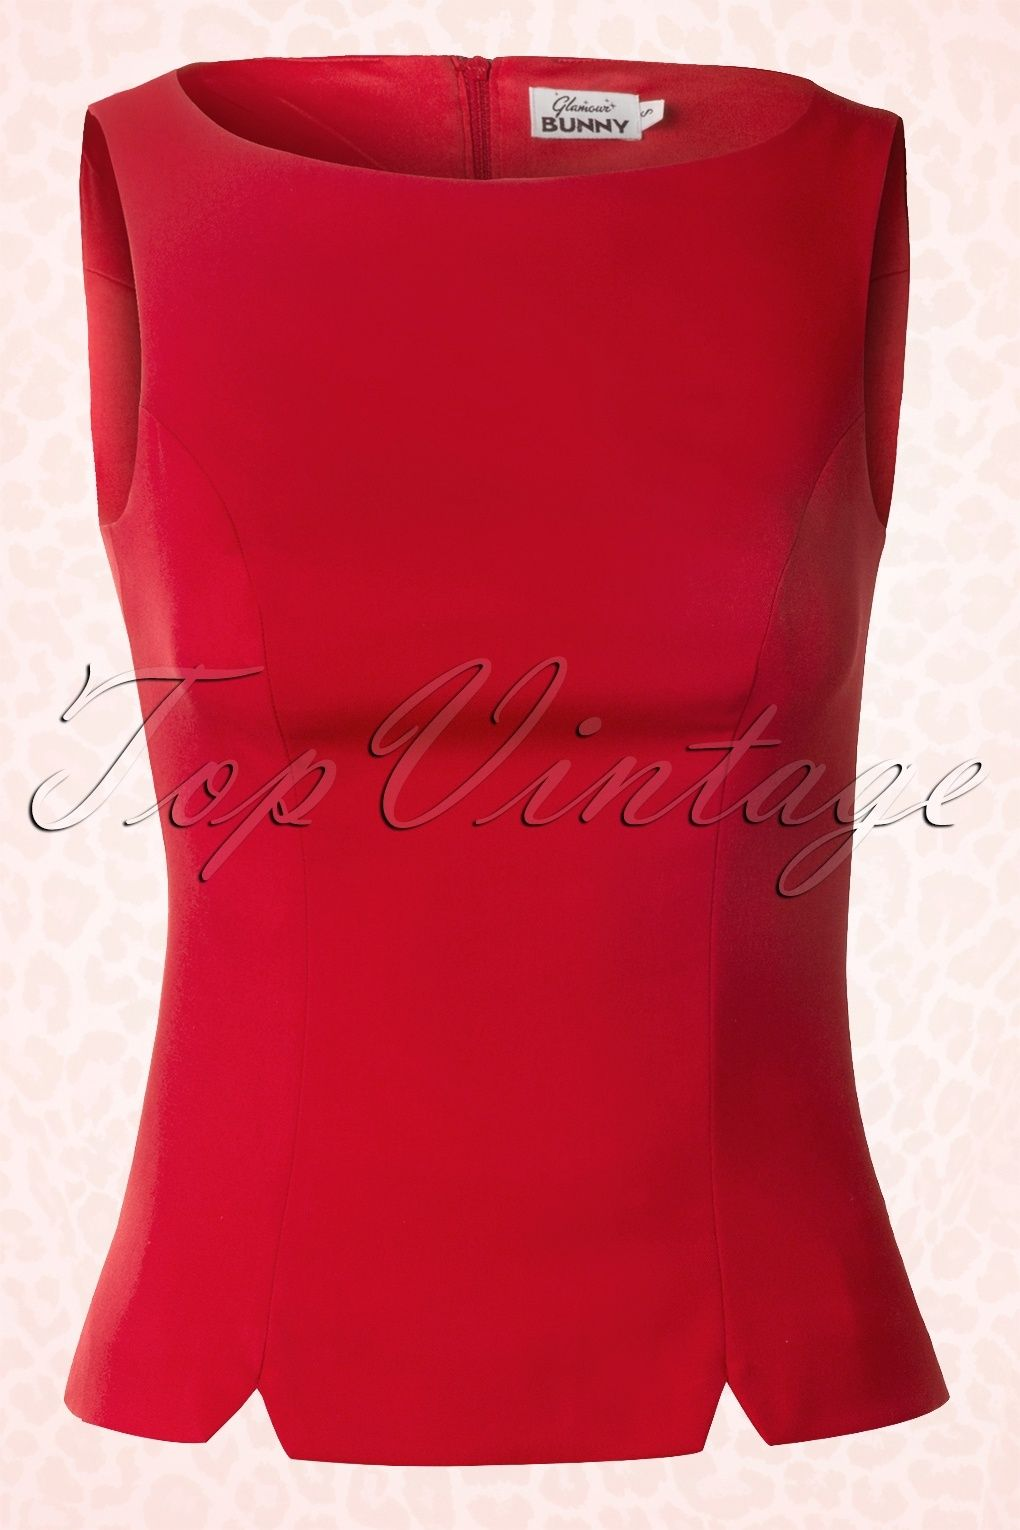 Whether you're going for 50's or 60's clothing, this fabulous50s Shift Top in Redby Glamour Bunnywill give you that desired retro clothing look!Nicely fitted model with flattering vertical darts that run into 2 small slits at the front and back for a slim silhouette, oh la la! Made from a light stretchy cotton blend in elegant red and finished off with a zipper that runs along the entire back of the top. Nice to pair with classic trousers and sassy heels just like Gia Genevi...